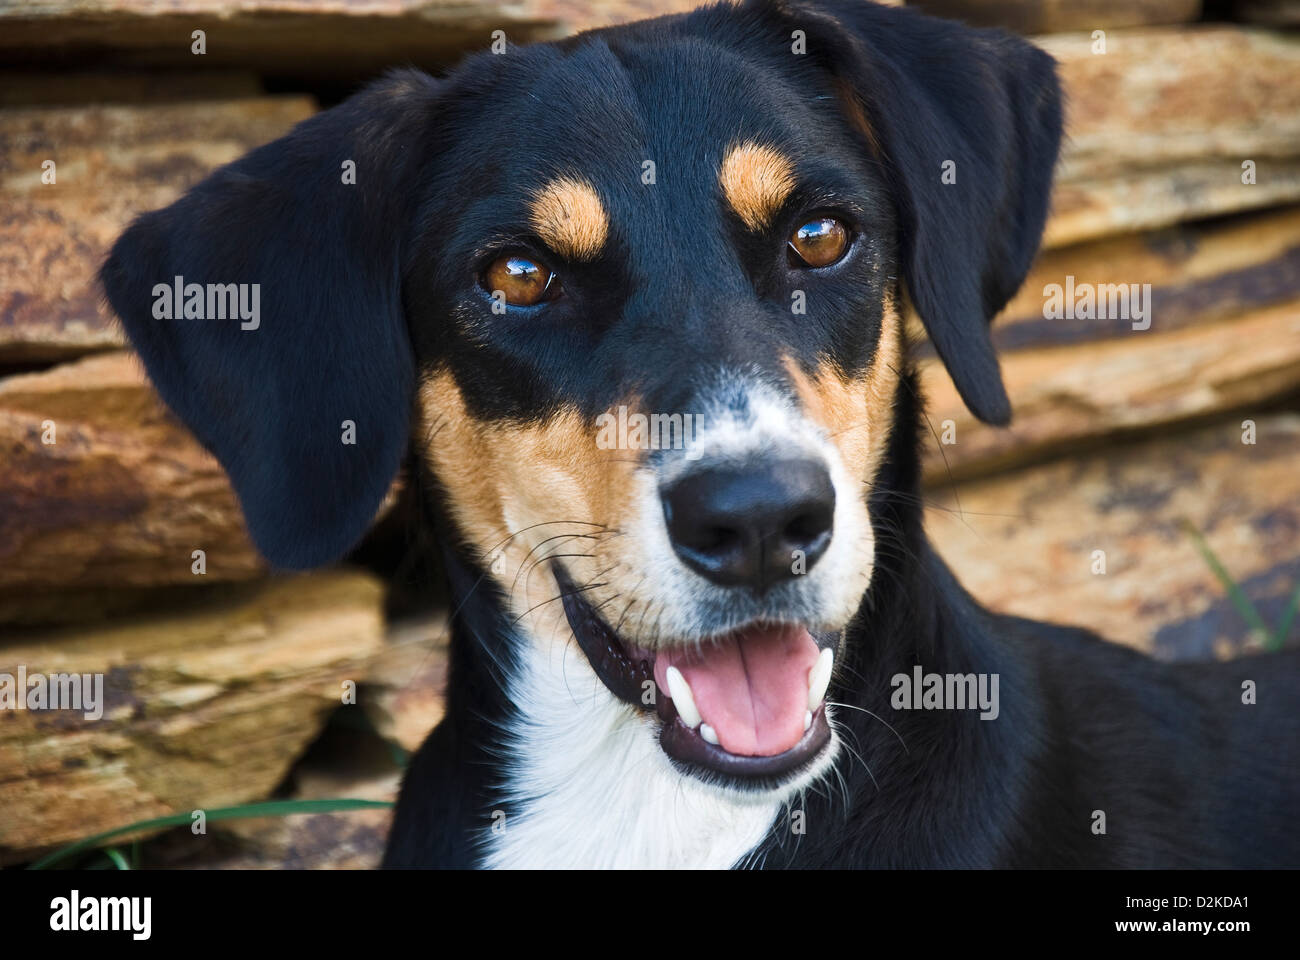 Portrait of a mongrel dog in front of brown stone wall - Stock Image